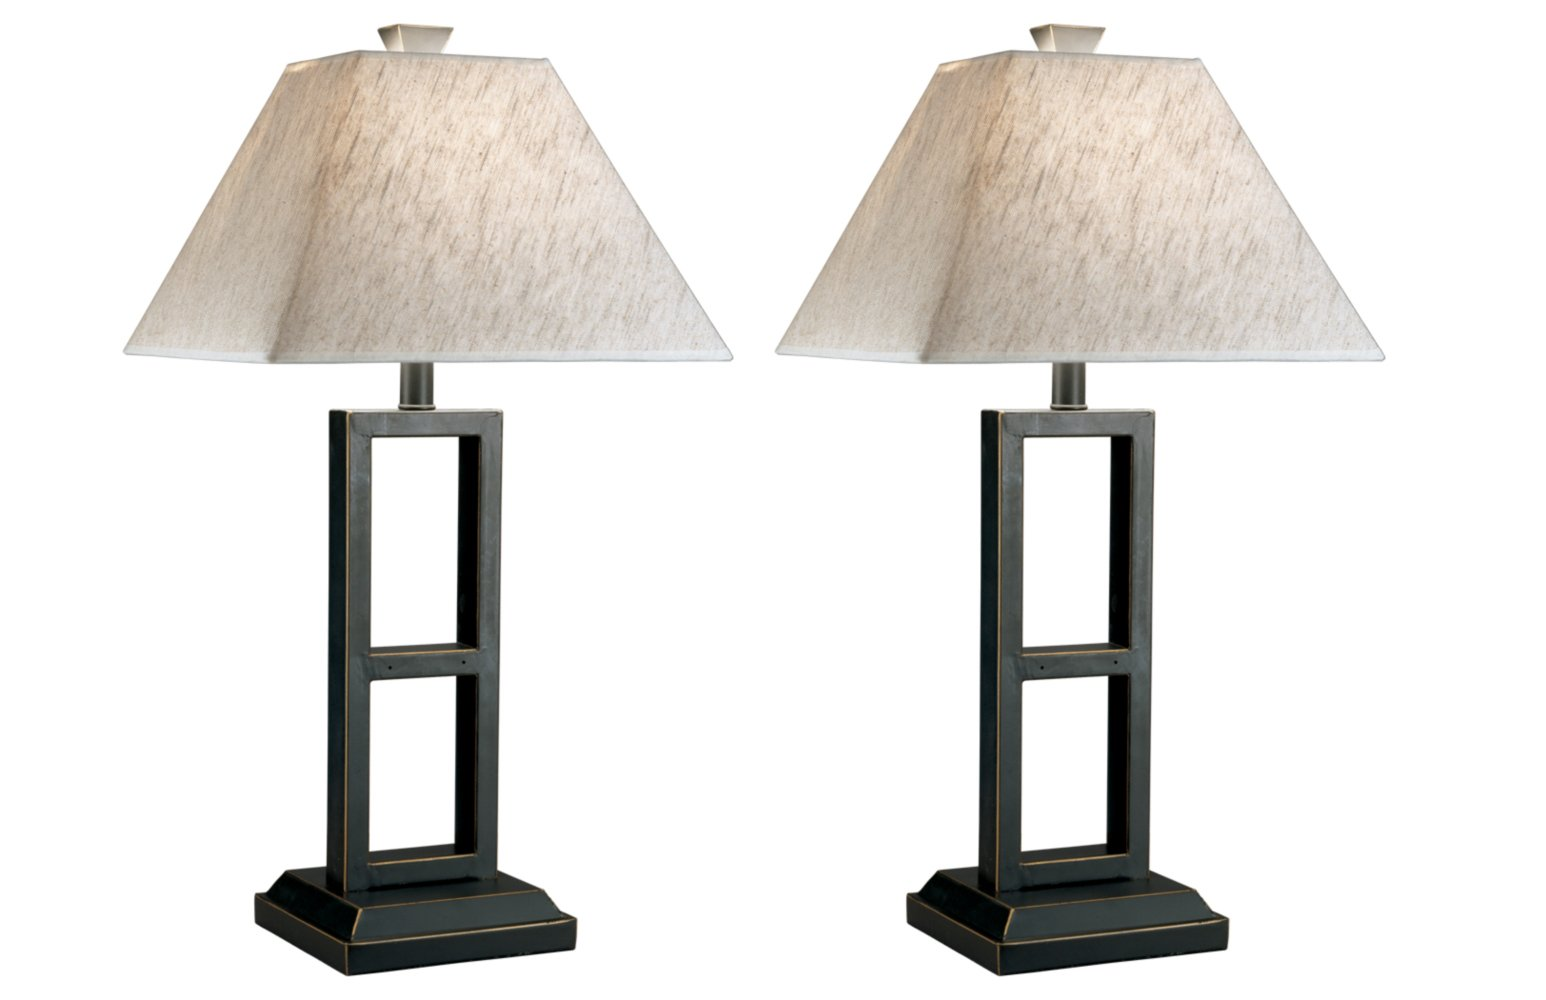 Ashley Furniture Signature Design - Deidra Metal Table Lamp - Chic Linen Shades - Set of 2 - Black Finish